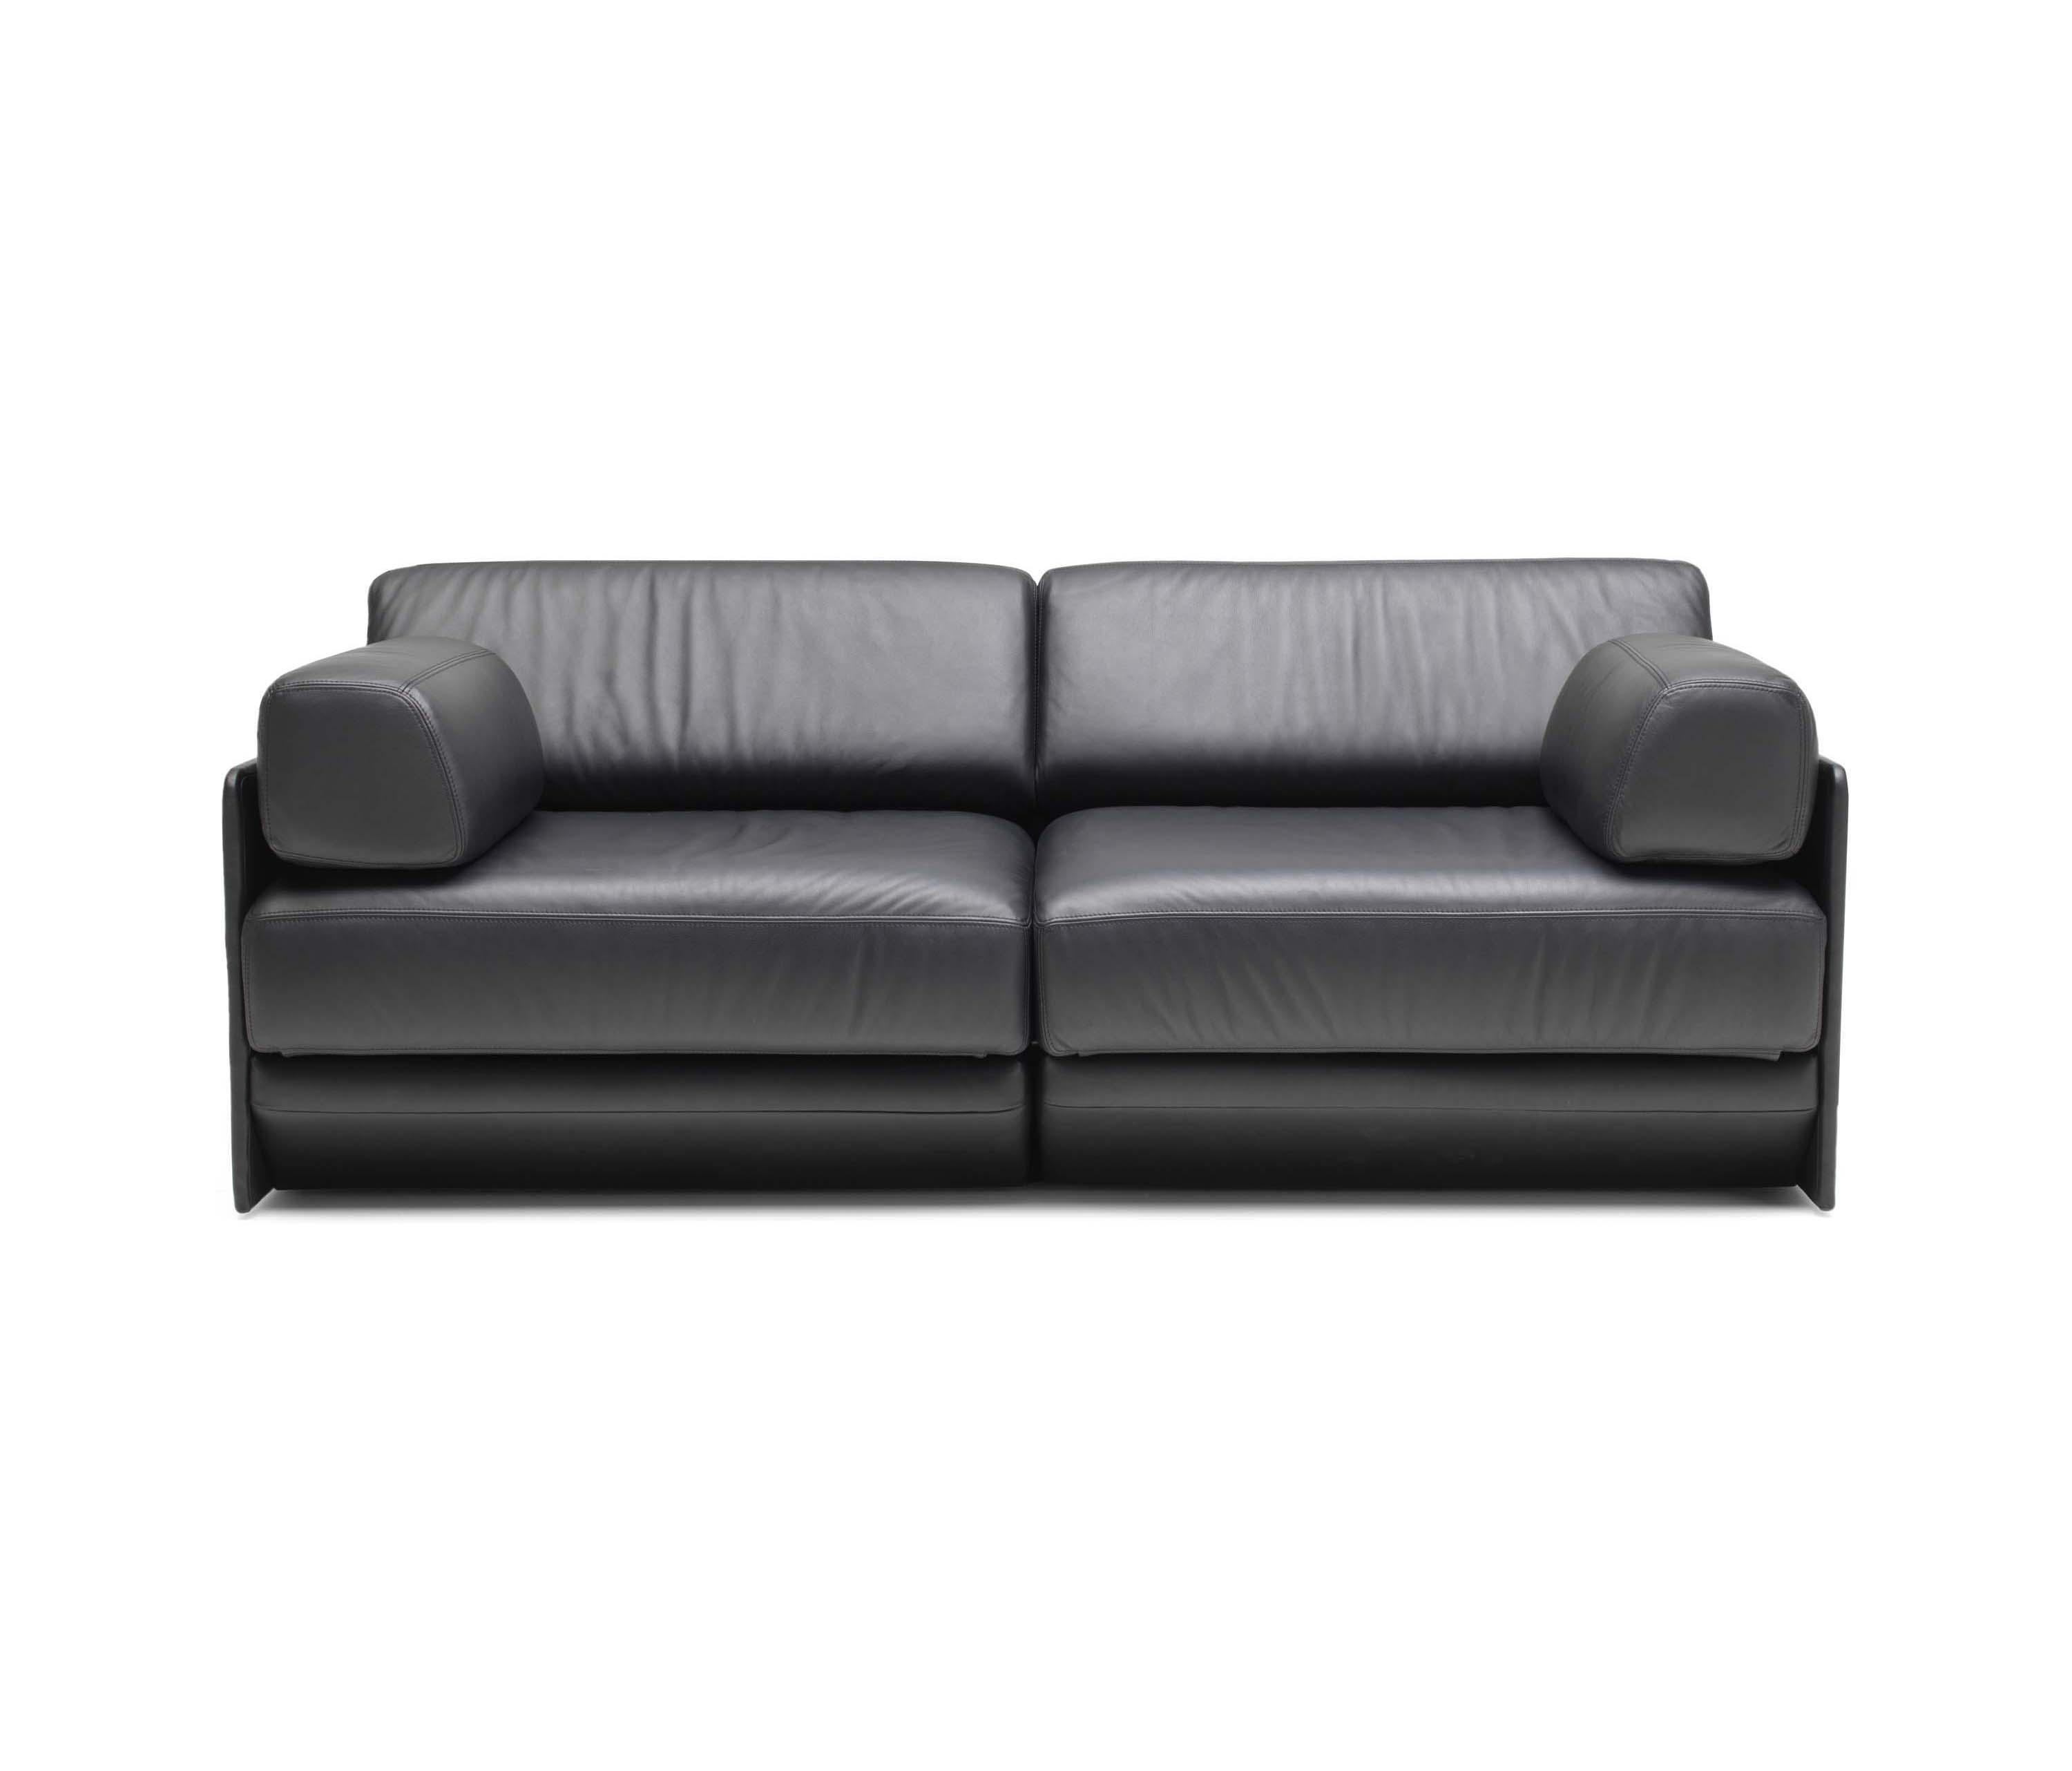 Ds 76 Sofas From De Sede Architonic